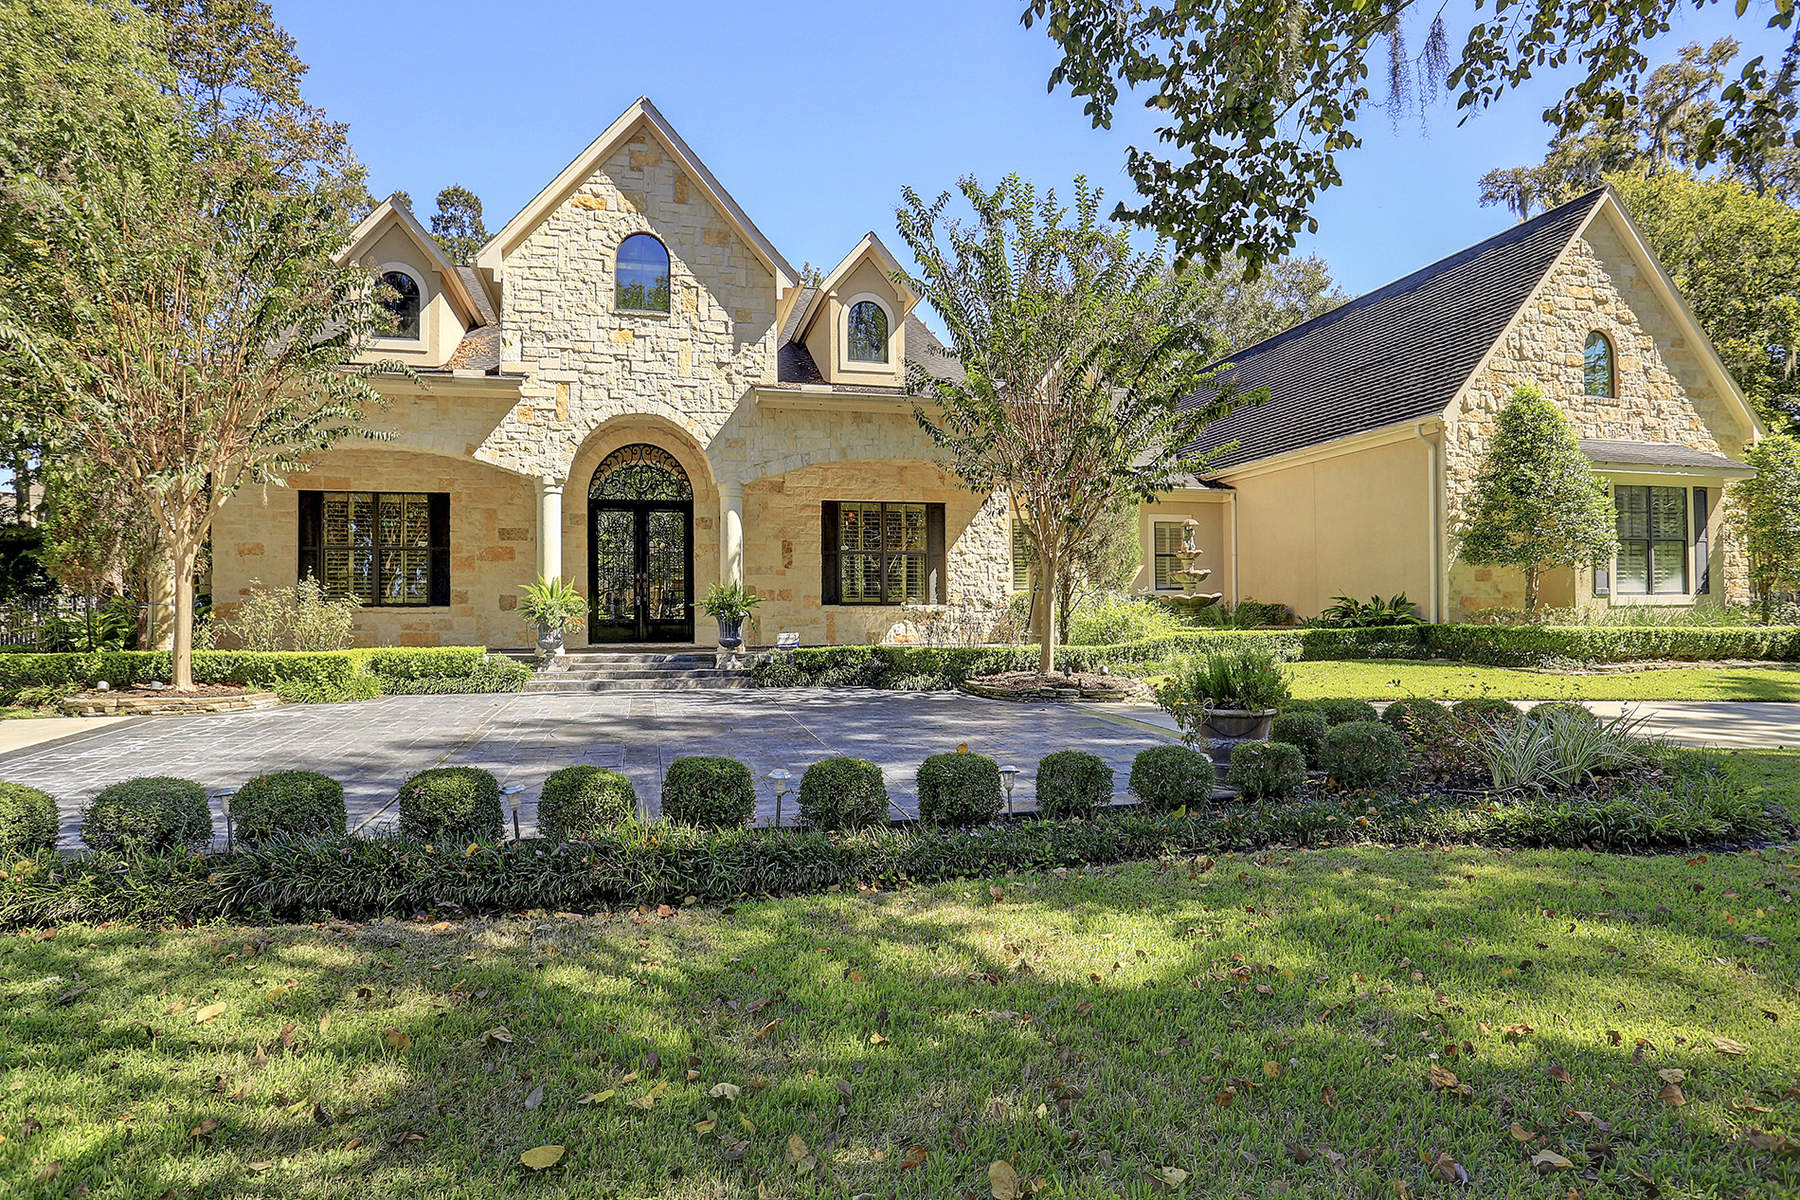 Single Family Home for Sale at 3320 Wild River Drive 3320 Wild River Drive Richmond, Texas 77406 United States